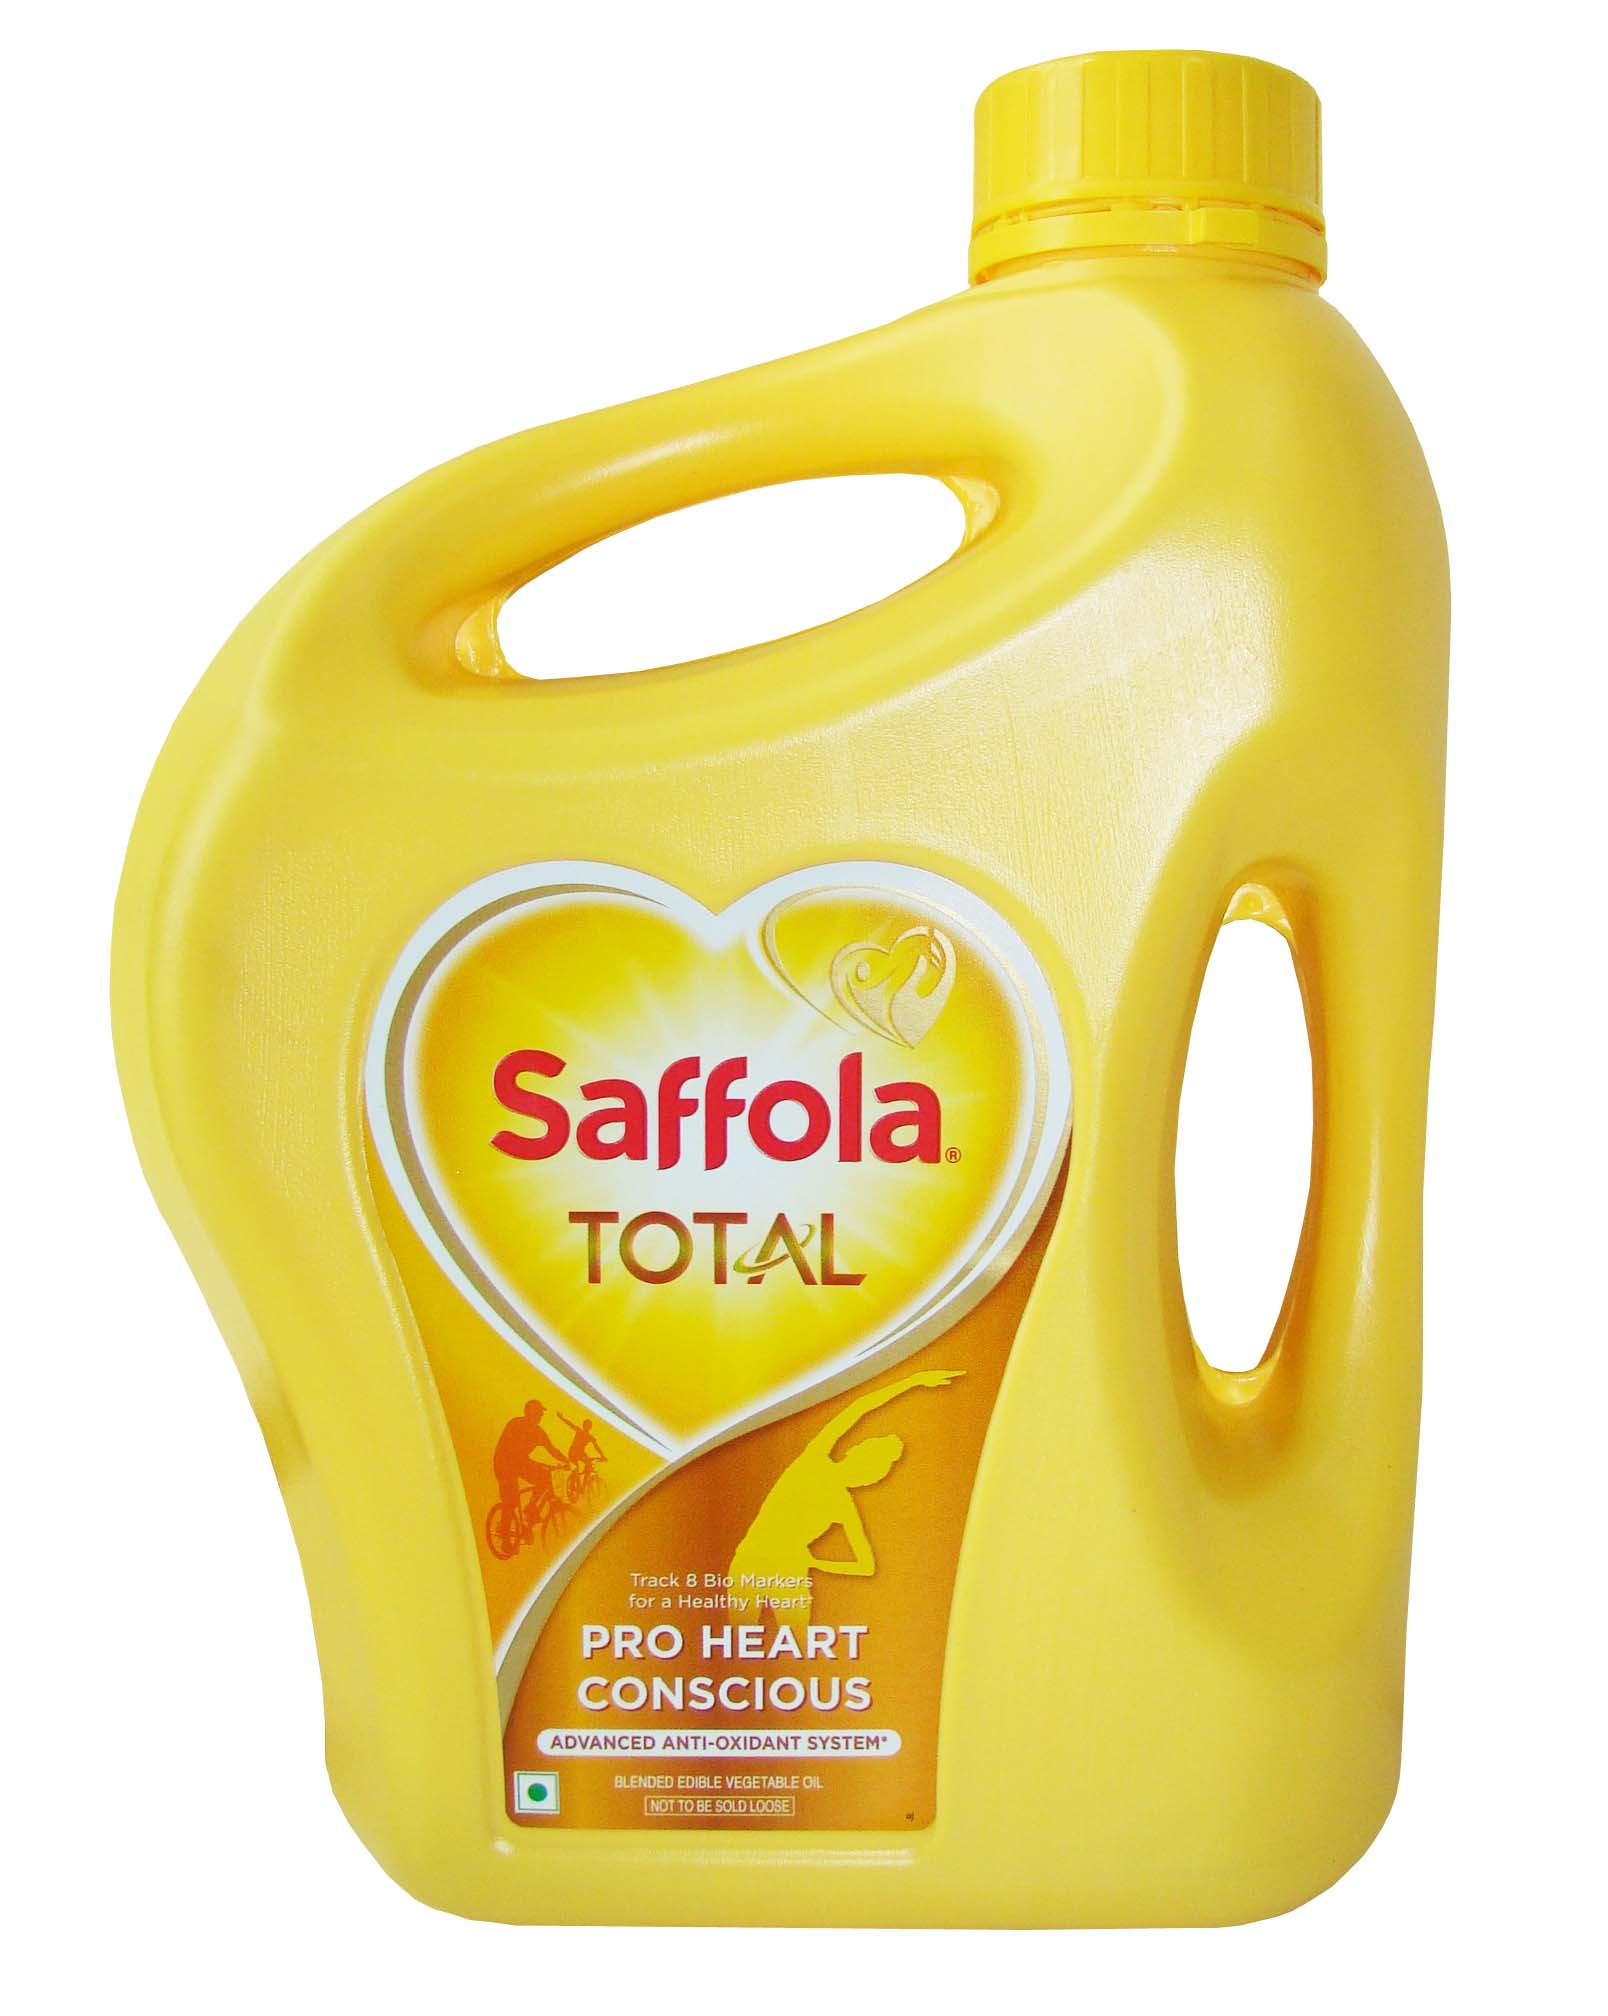 Саффола Тотал, 2л/Saffola Total Cooking Oil 2Litre